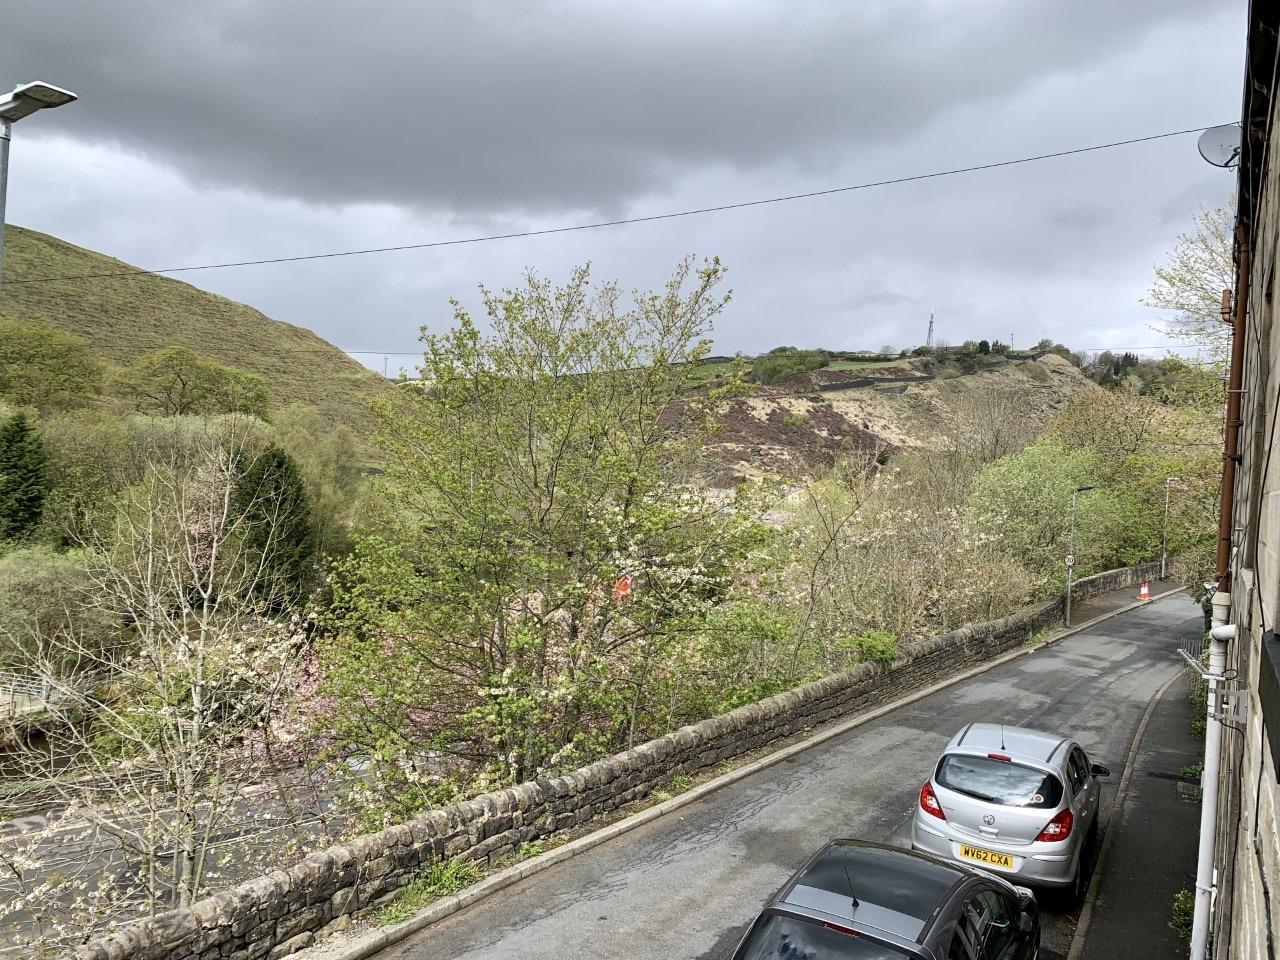 3 bedroom mid terraced house For Sale in Calderdale - Photograph 14.